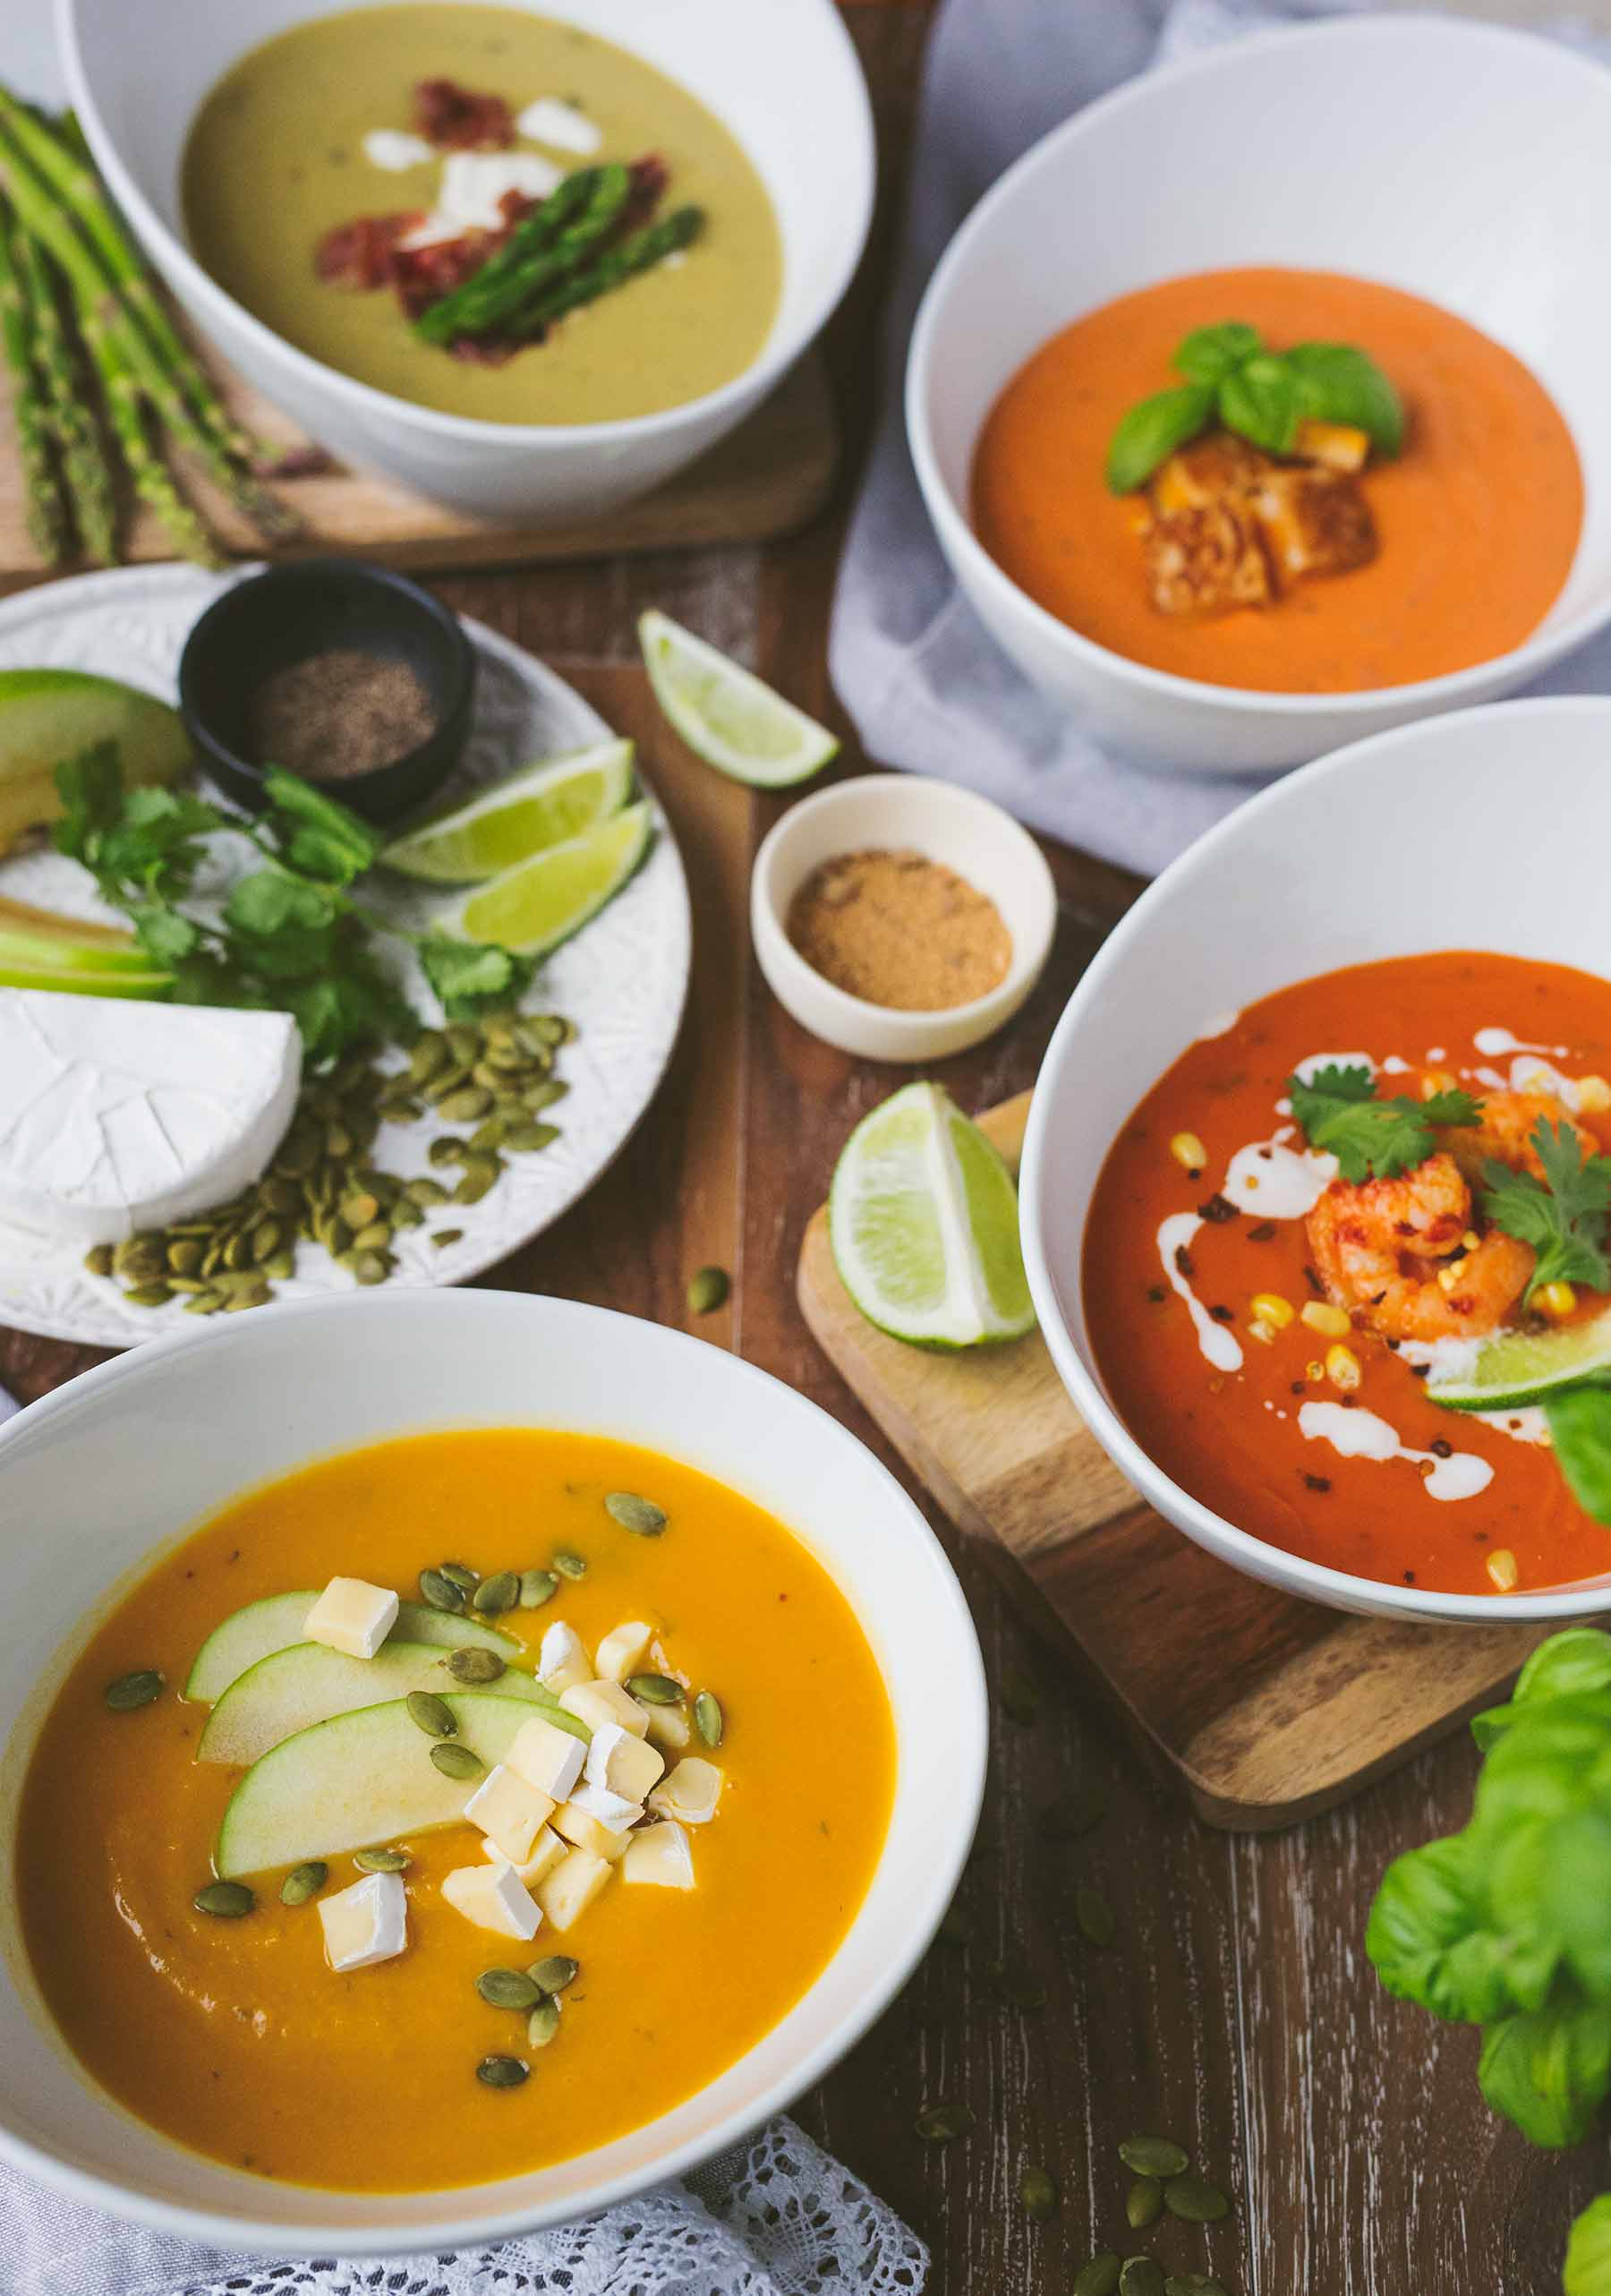 Campbell's Everyday Gourmet Soups